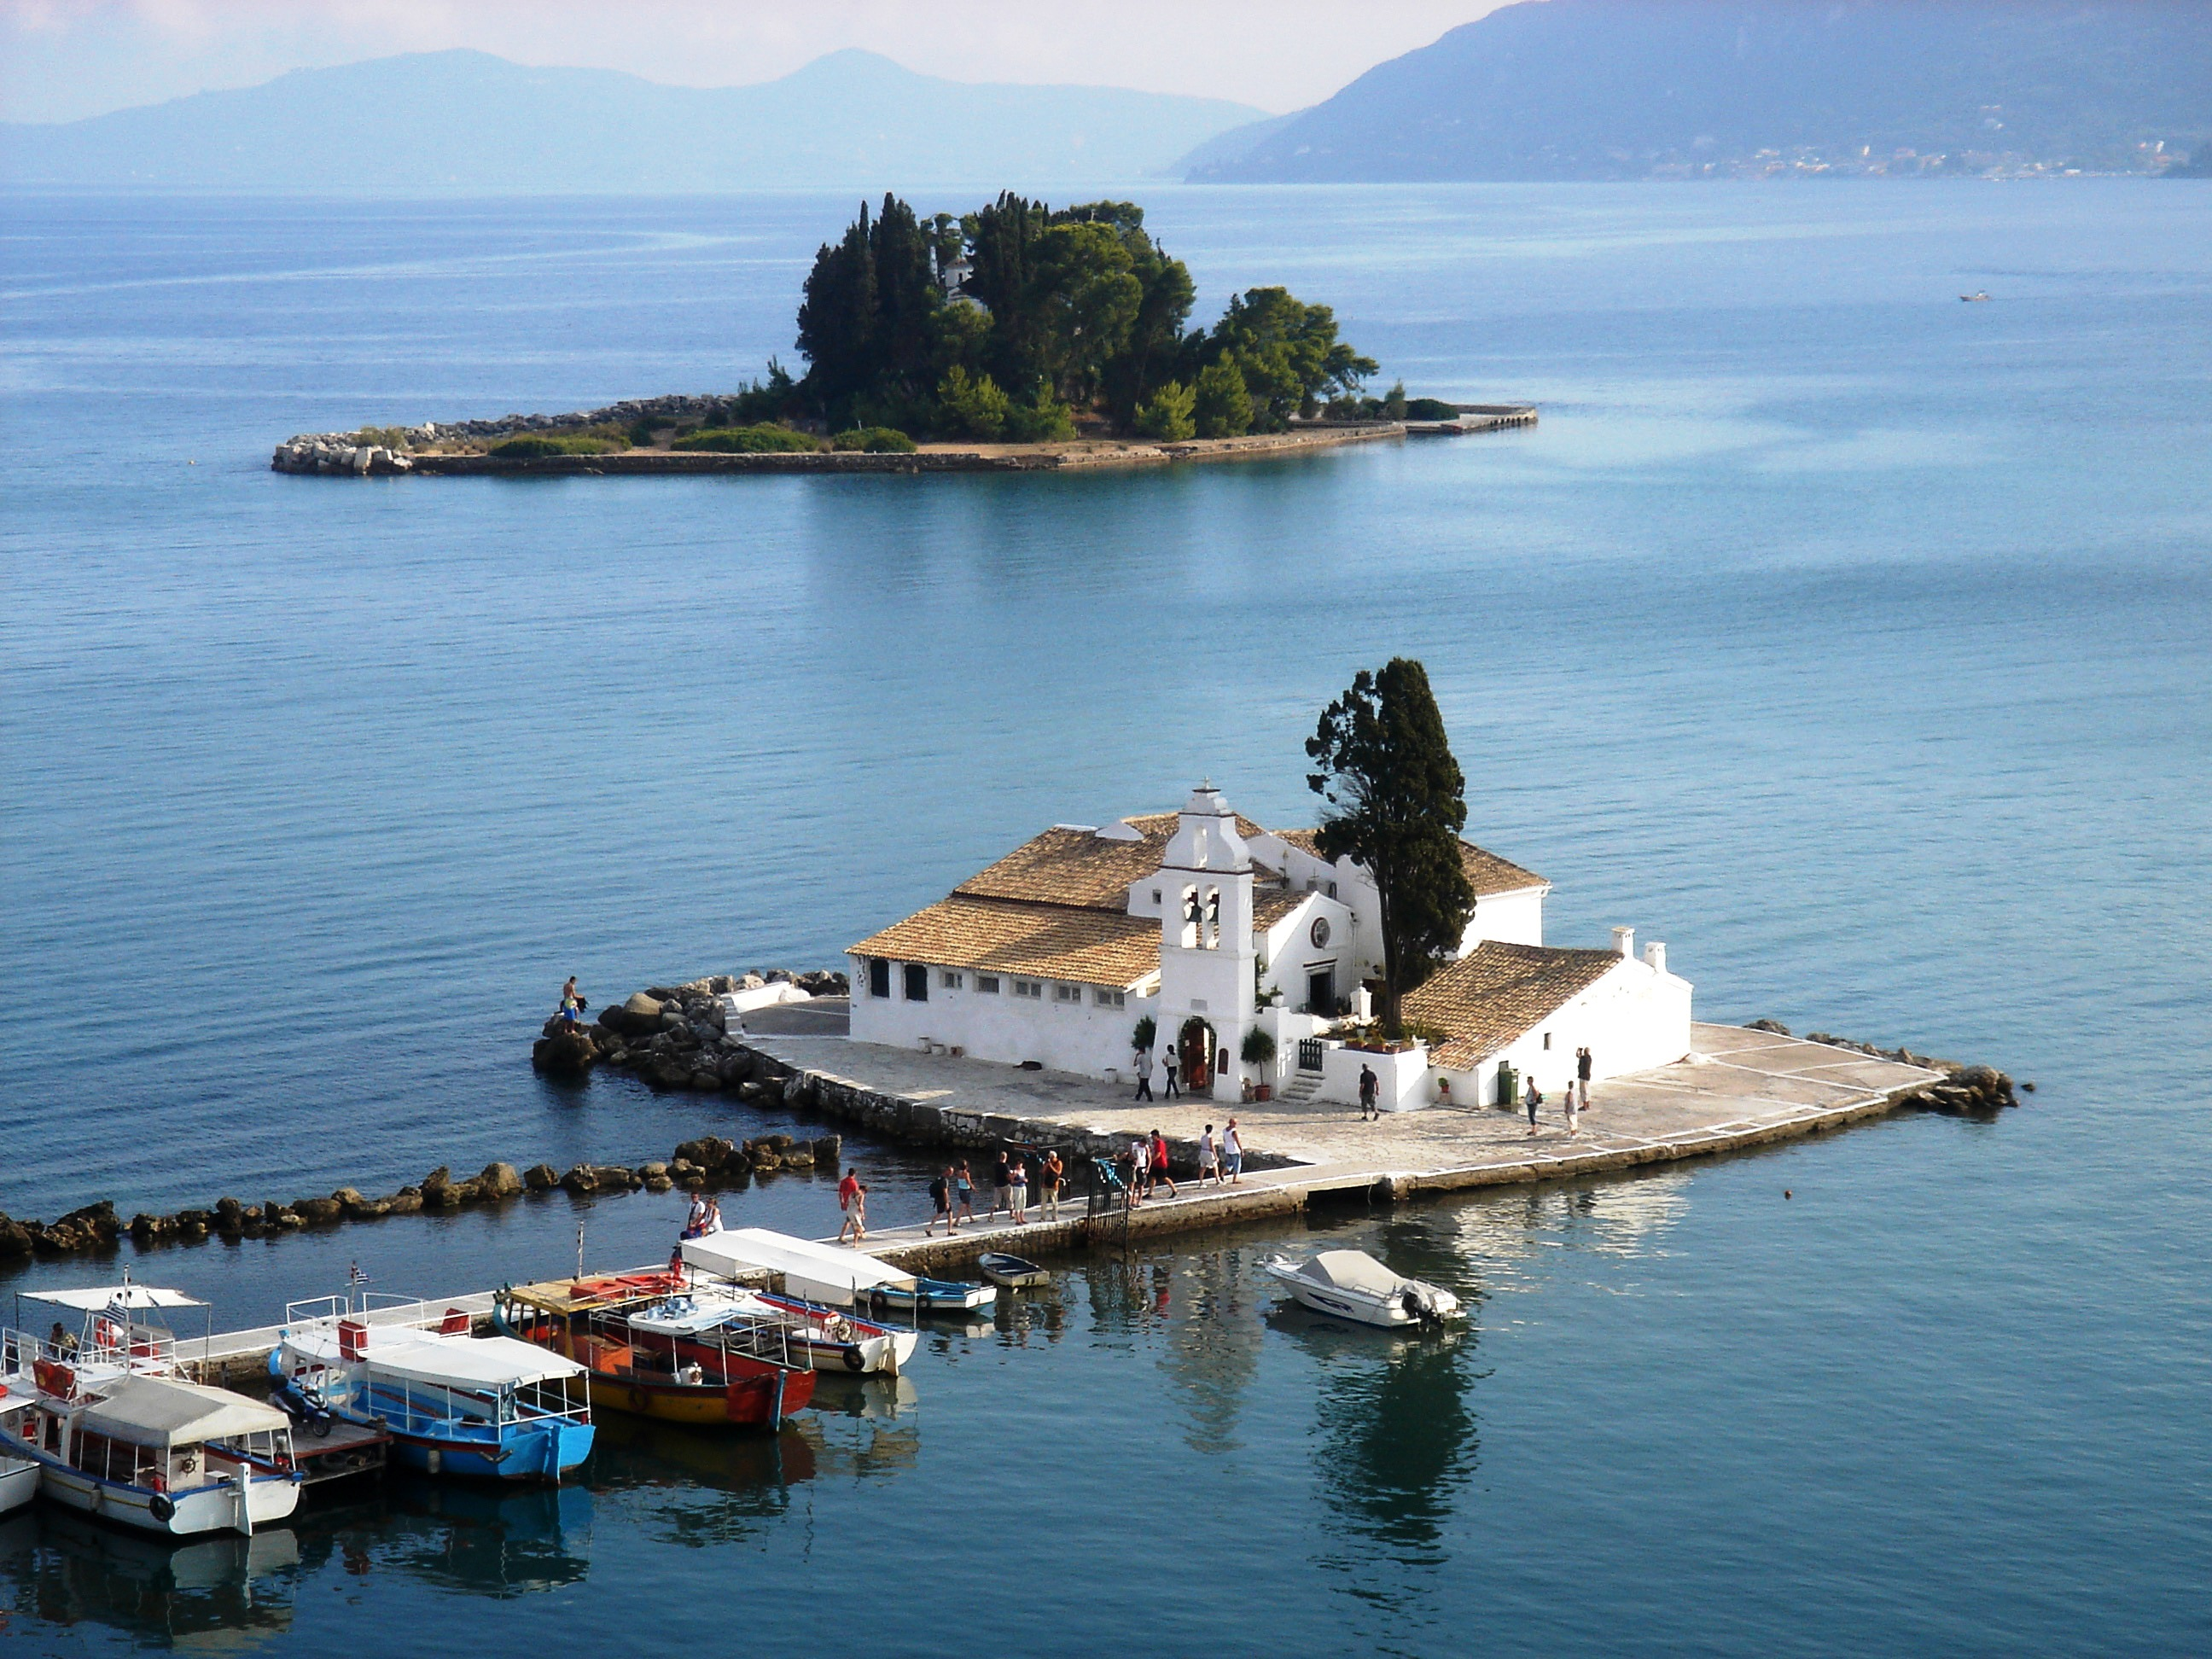 Corfu, one of the most romantic islands